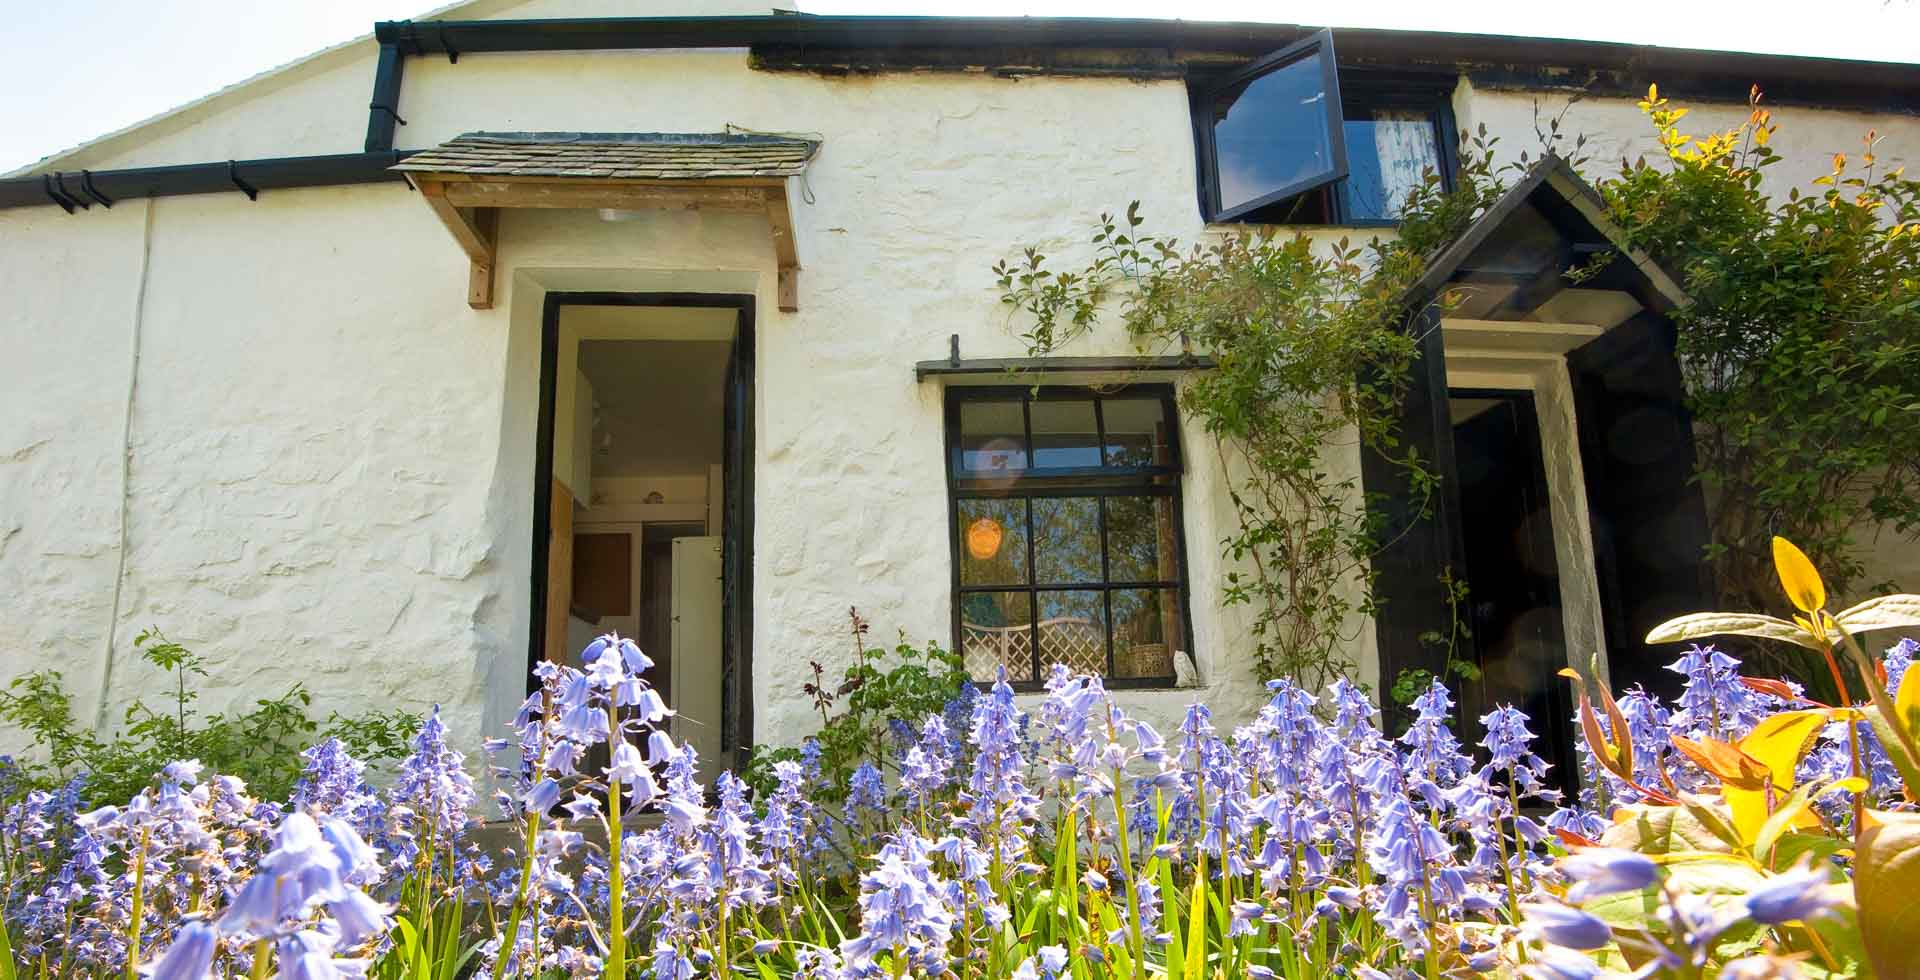 The collectors olivey place mylor bridge nr falmouth cornwall uk - Willow Cottage